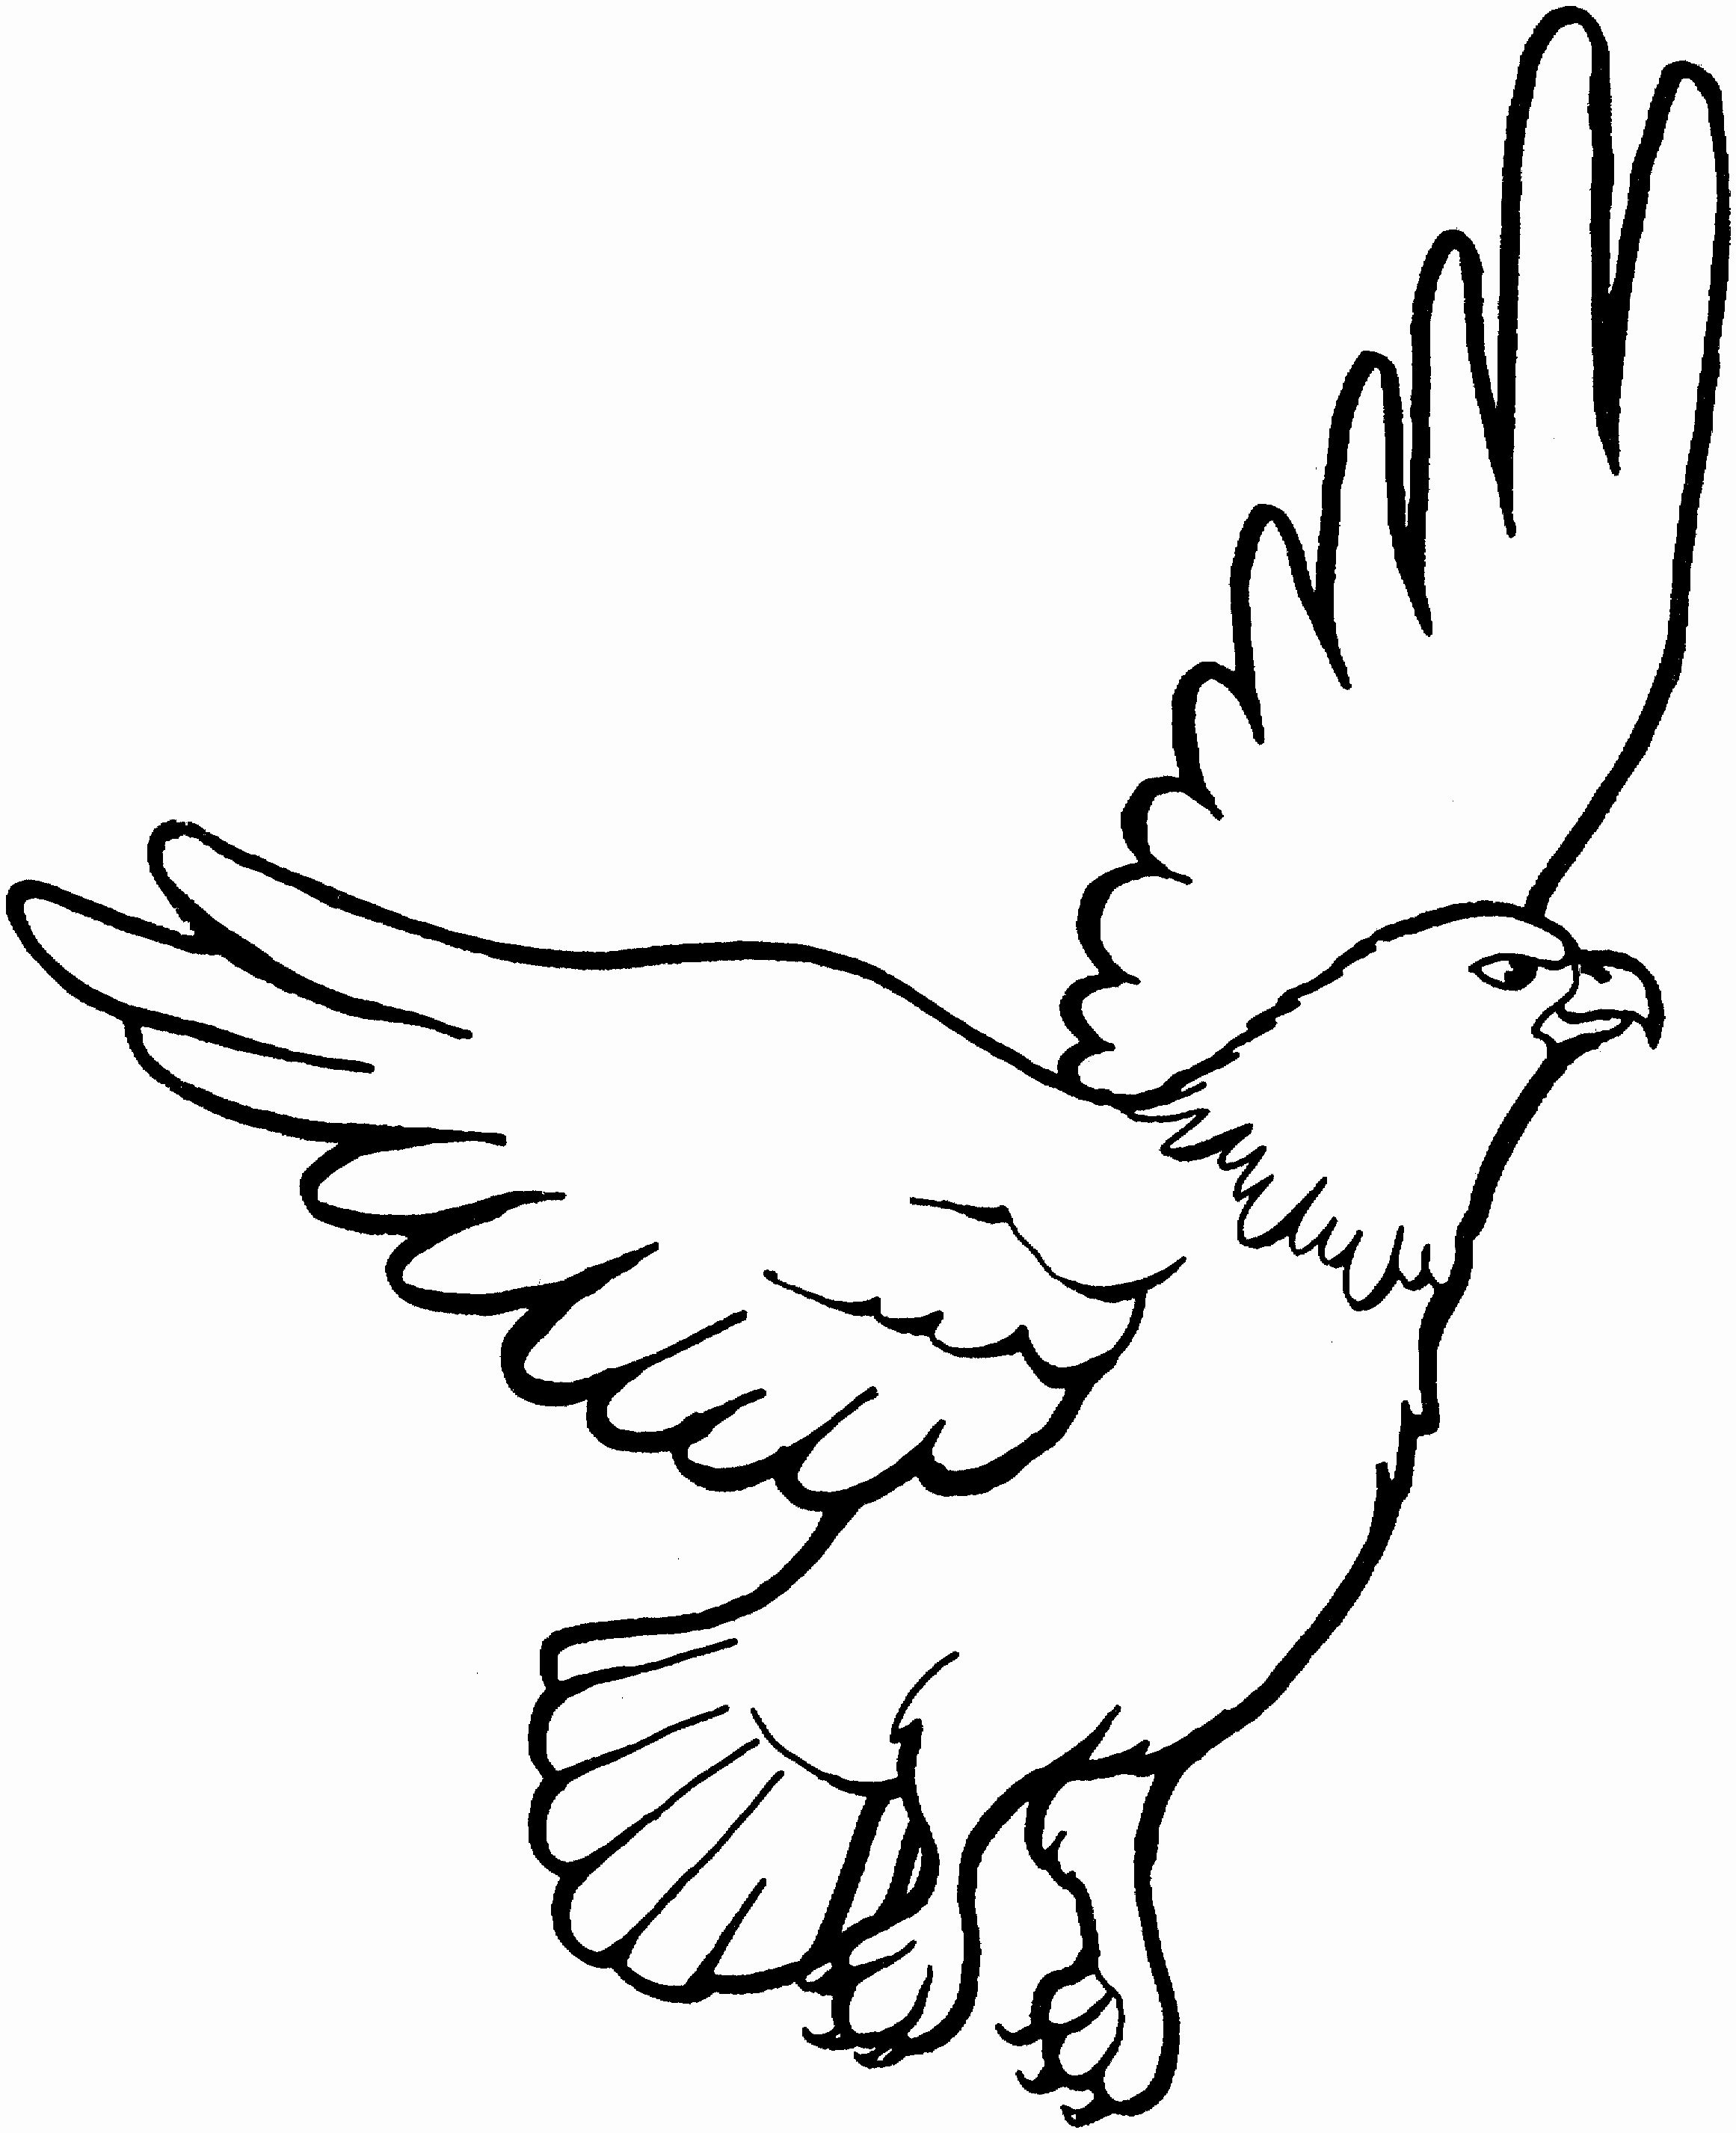 Bald Eagle Coloring Page New Free Eagle Coloring Pages In 2020